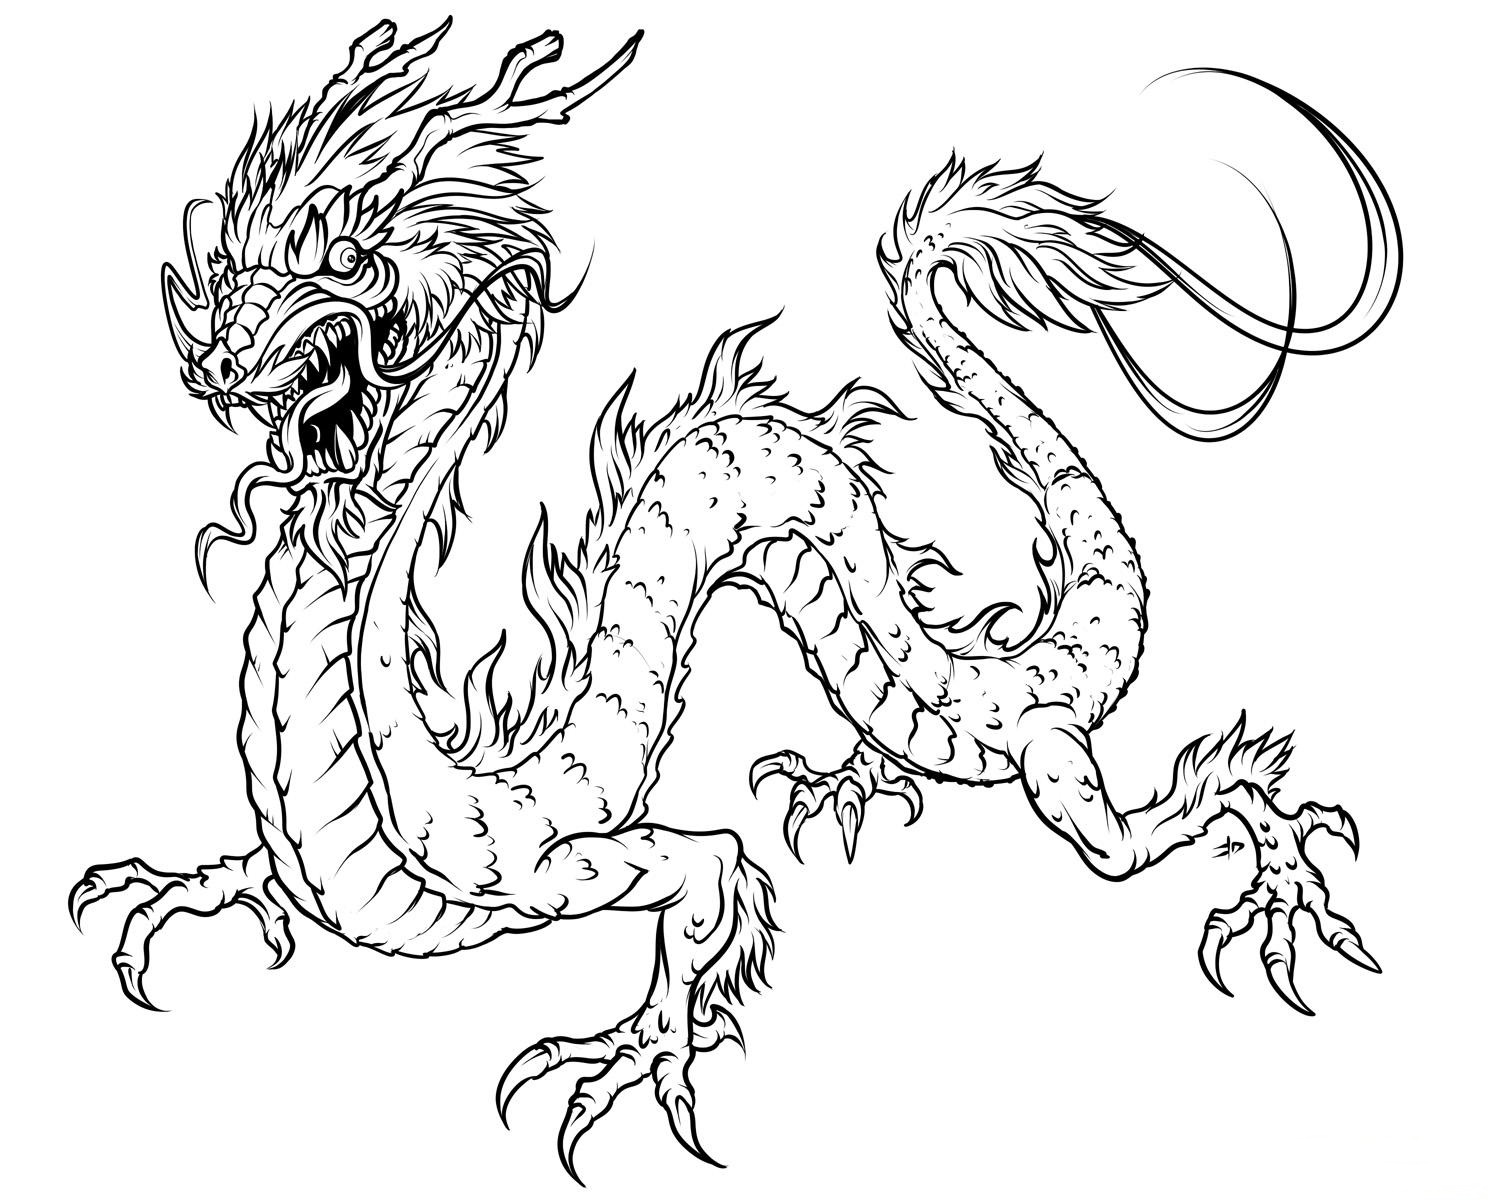 images of dragons to color fantasy dragon coloring page free printable coloring pages to color dragons images of